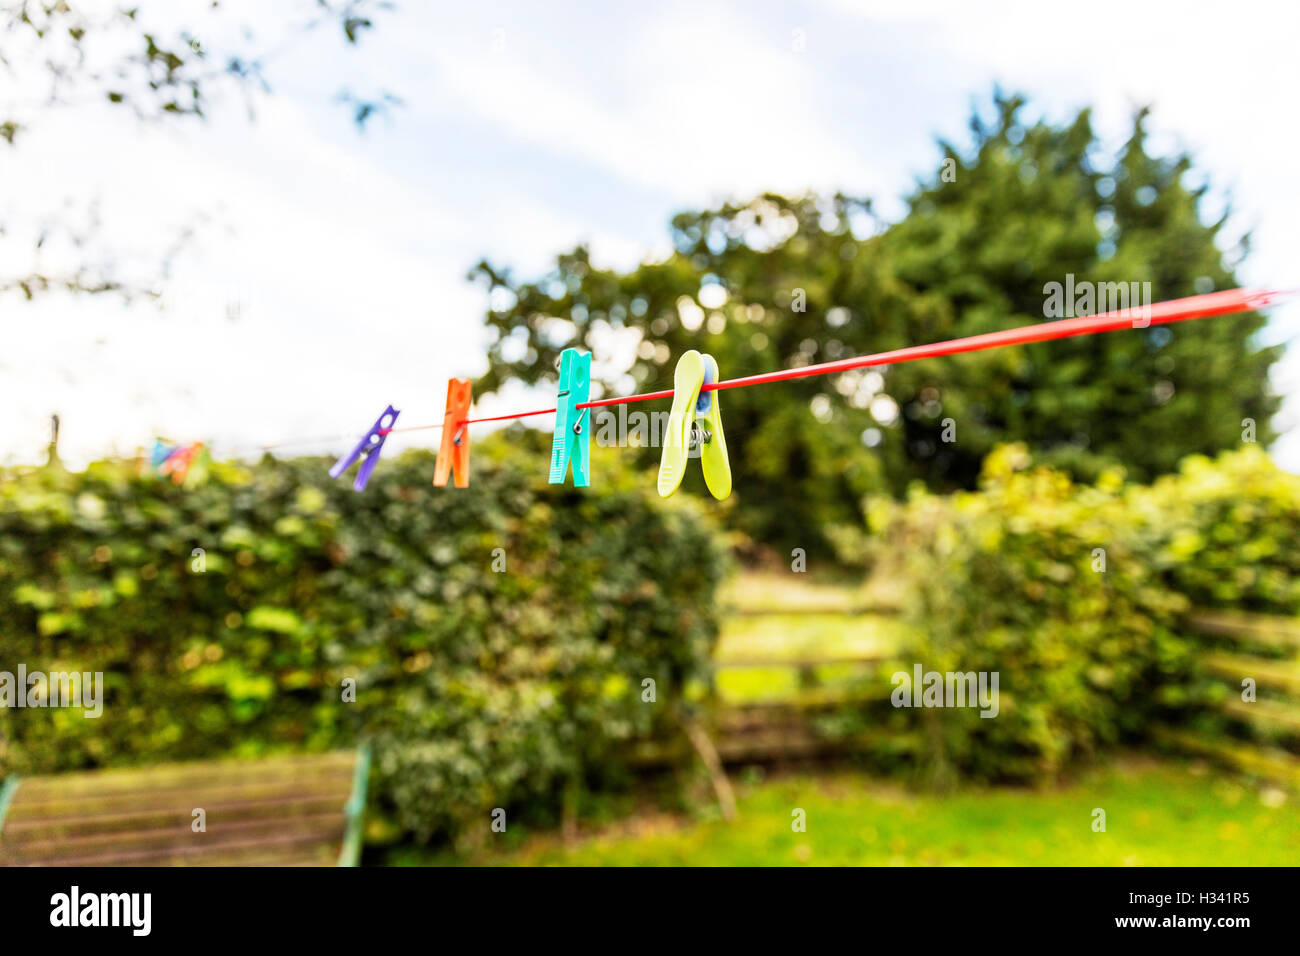 Clothes pegs on washing line clothes peg clipped to line outside garden UK England GB - Stock Image